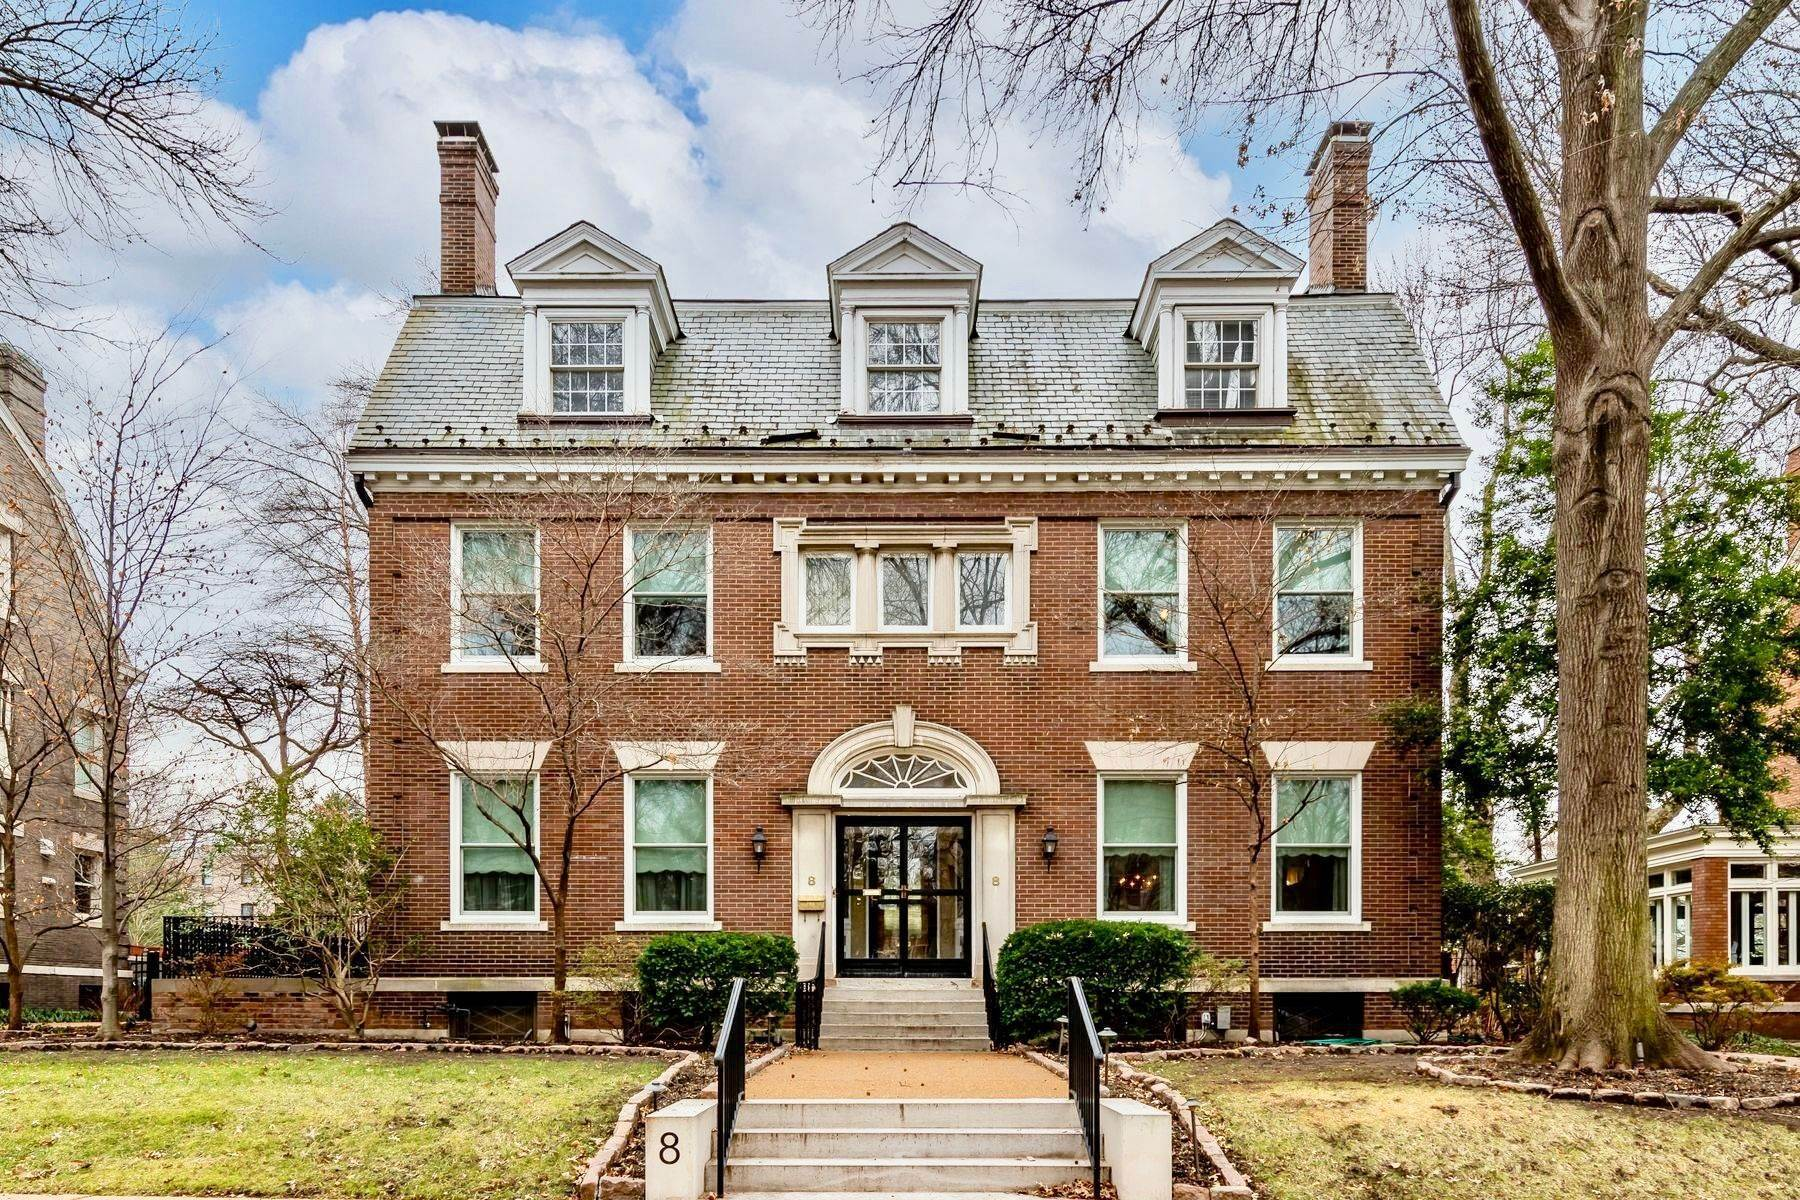 Single Family Homes for Sale at Elegant Home In The Desirable CWE 8 Hortense Place St. Louis, Missouri 63108 United States